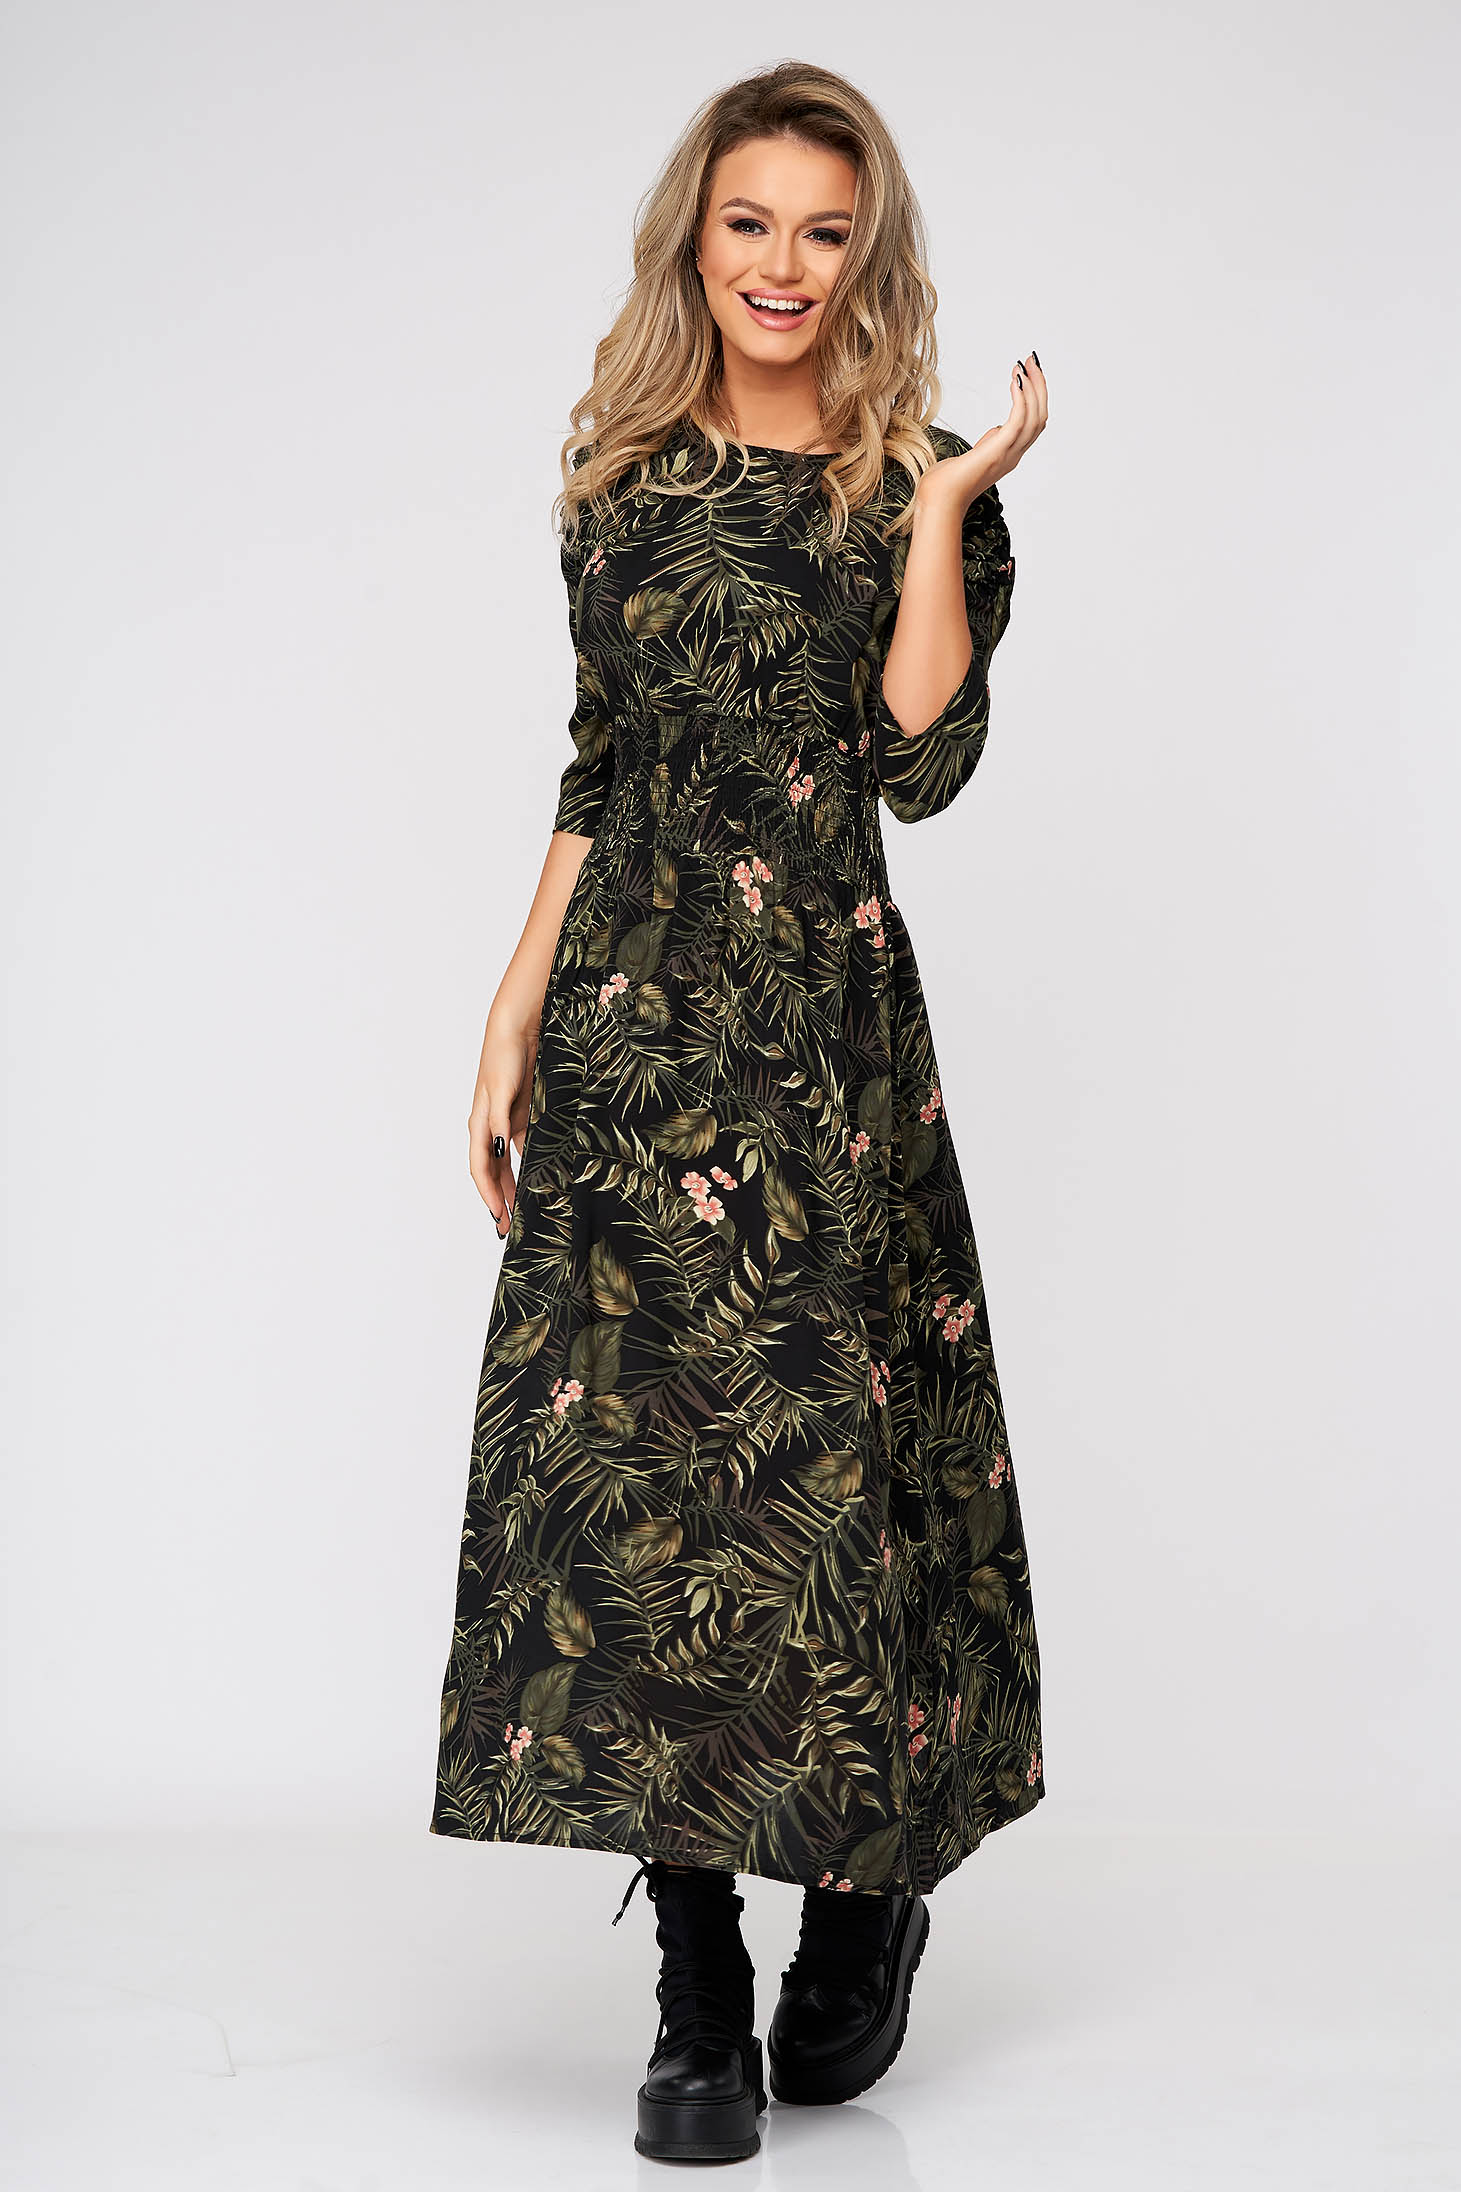 Black dress daily midi cloche airy fabric with floral prints